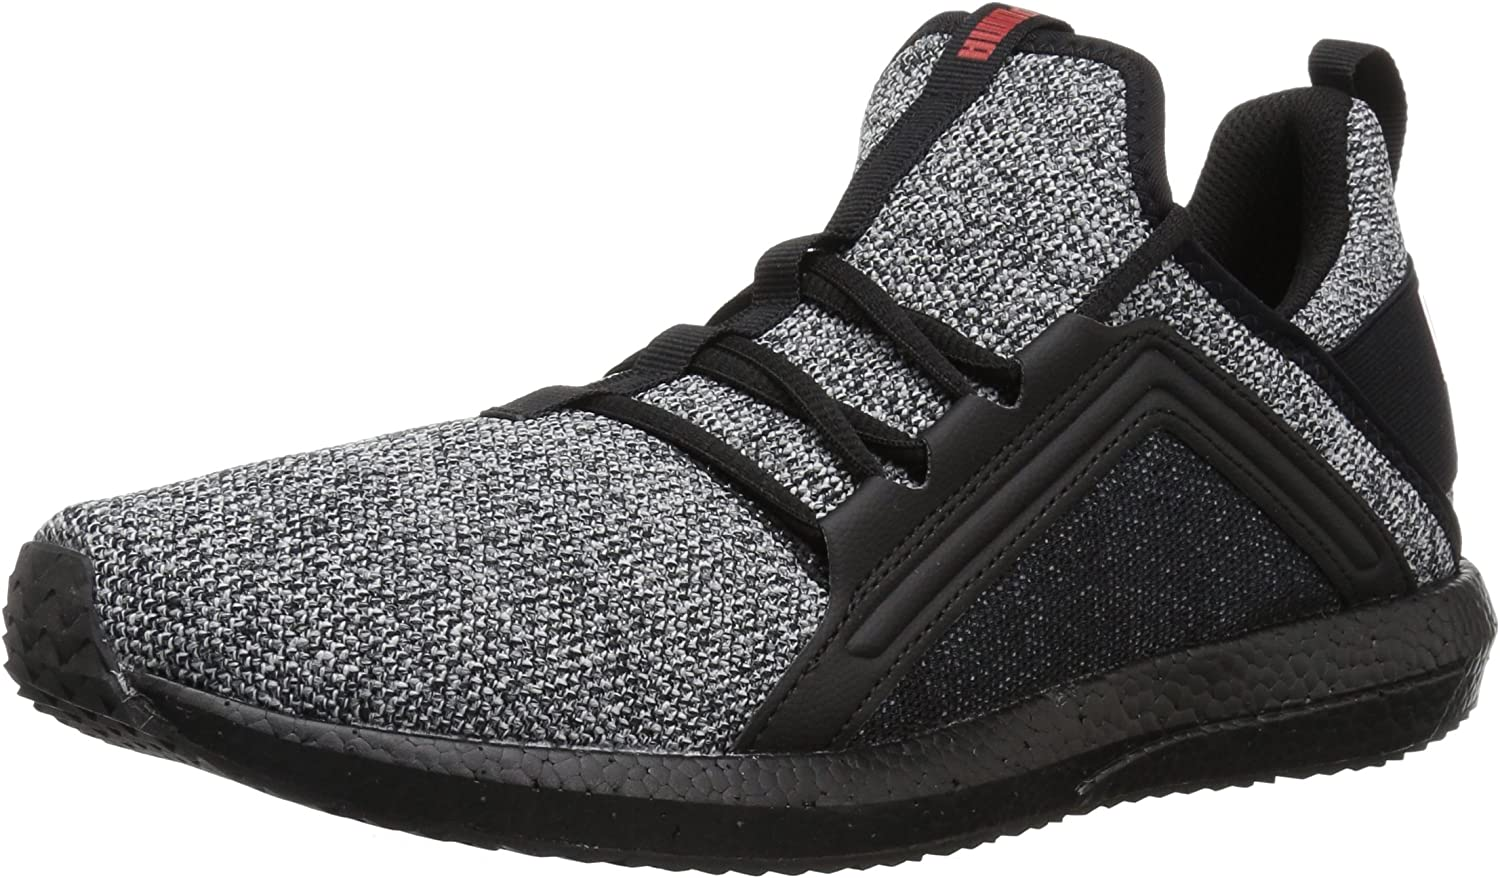 Ranking Sales of SALE items from new works TOP5 PUMA Unisex-Adult Mega Sneaker Knit NRGY